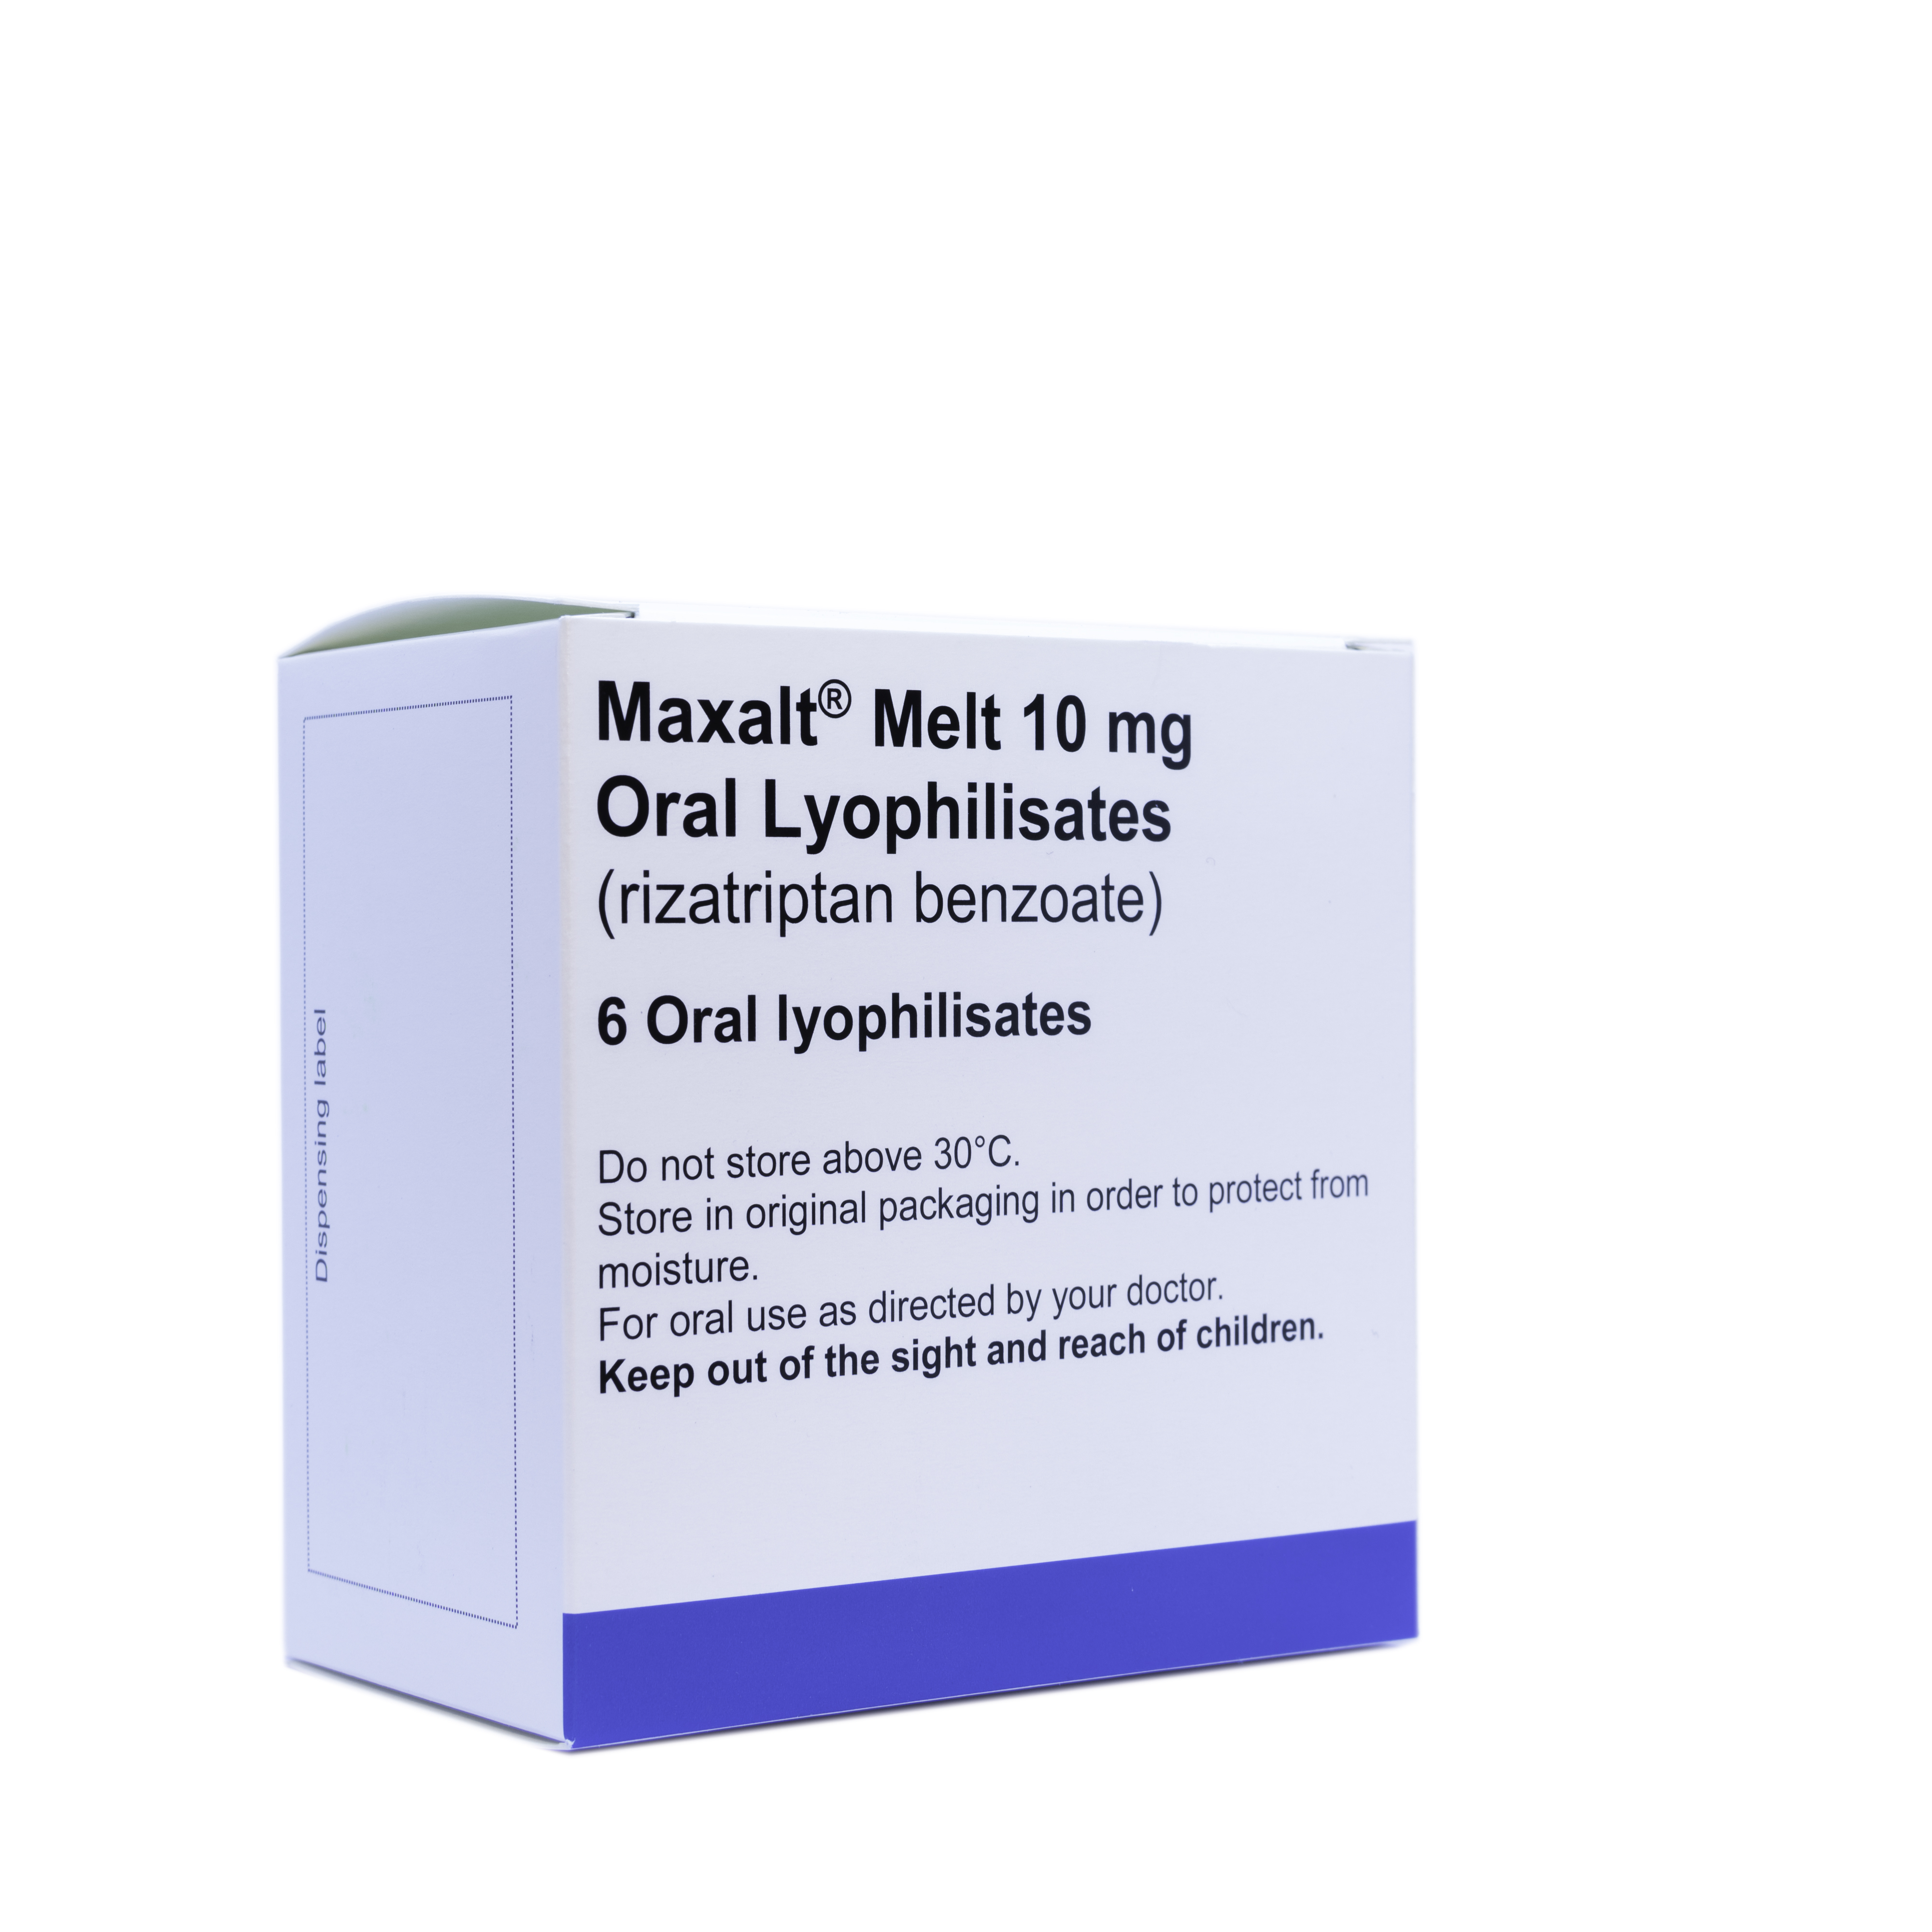 Maxalt Melts 10mg - 6 Tablets